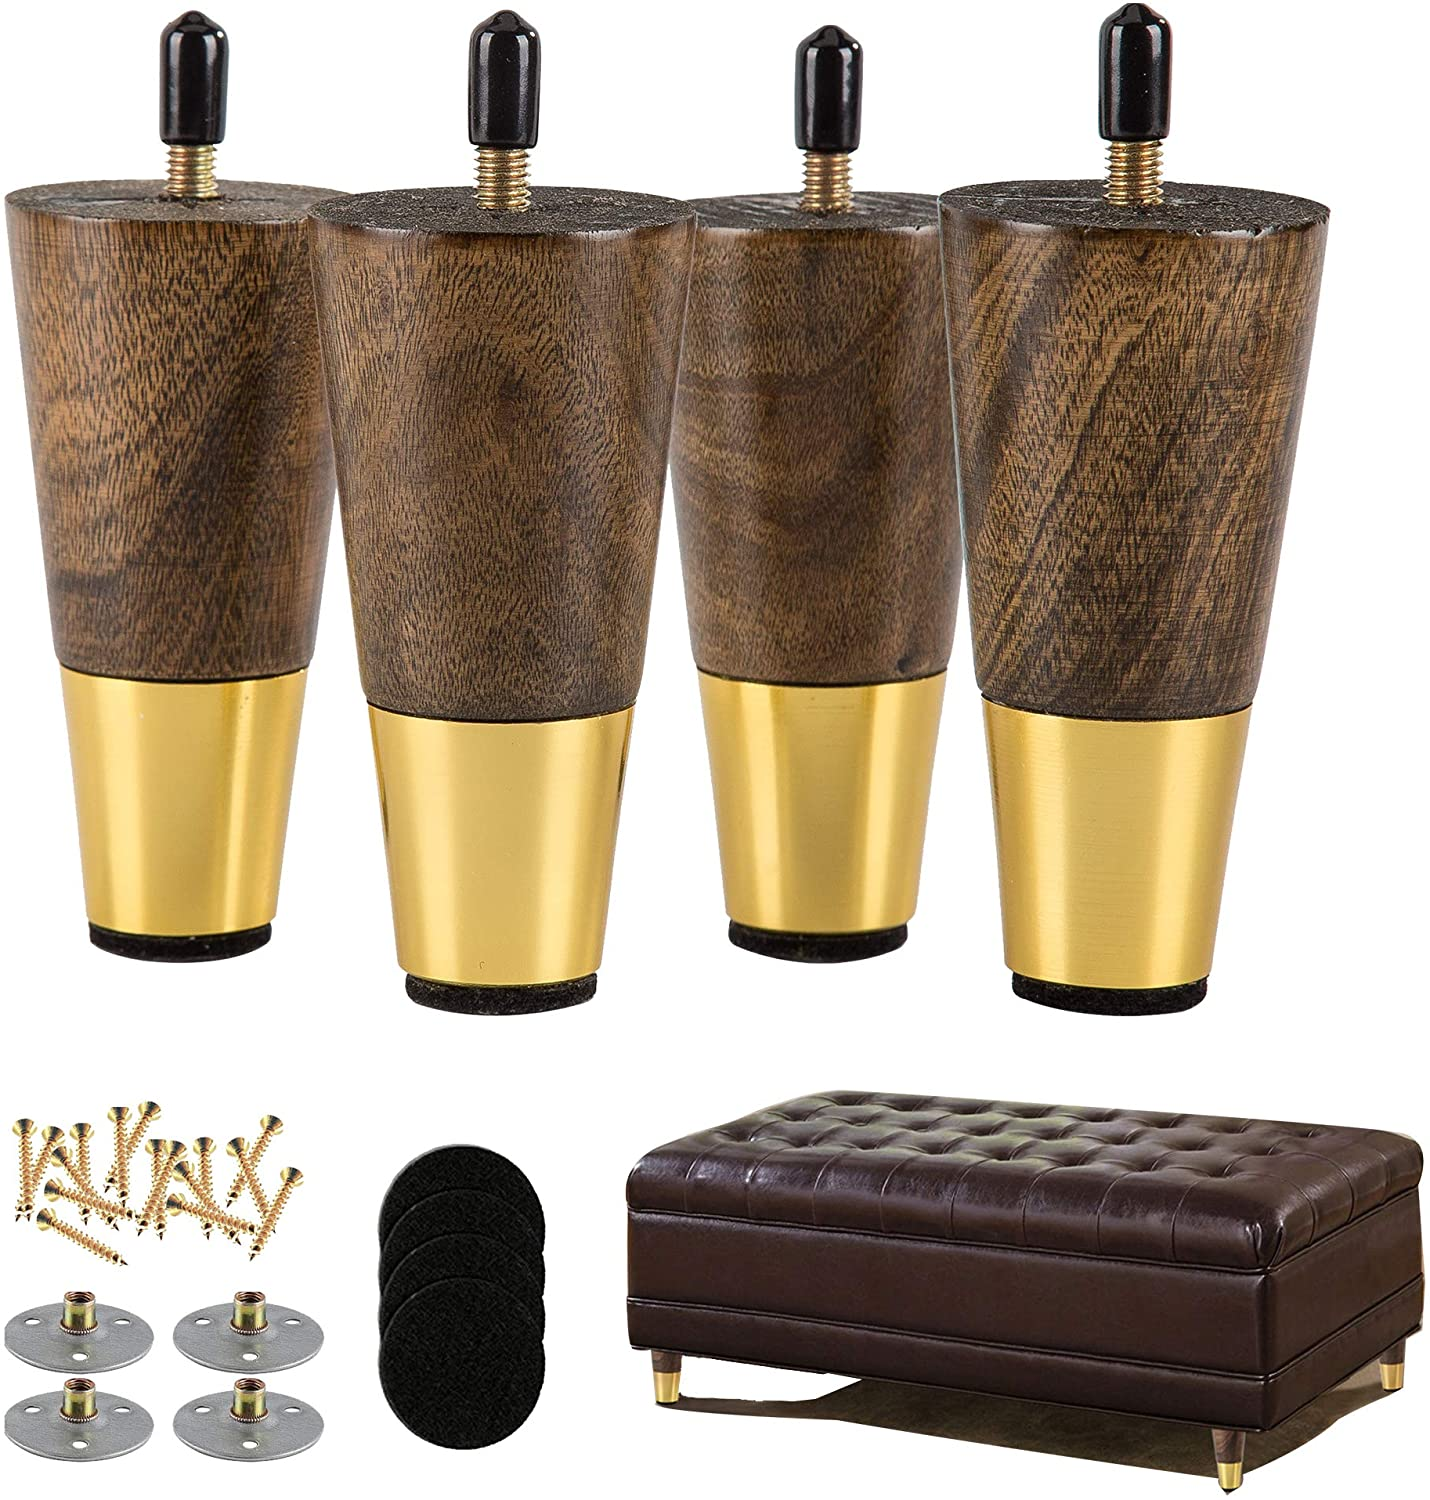 ALAMHI Wood Furniture Leg Sofa Legs 4 Inch Brown Round Tapered Mid-Century Modern Feet with Brass Base Replacement 5/16 inch Bolt for Cabinets,Coffee Table,Ottoman,TV Stand,Loveseat,Armchair Set of 4